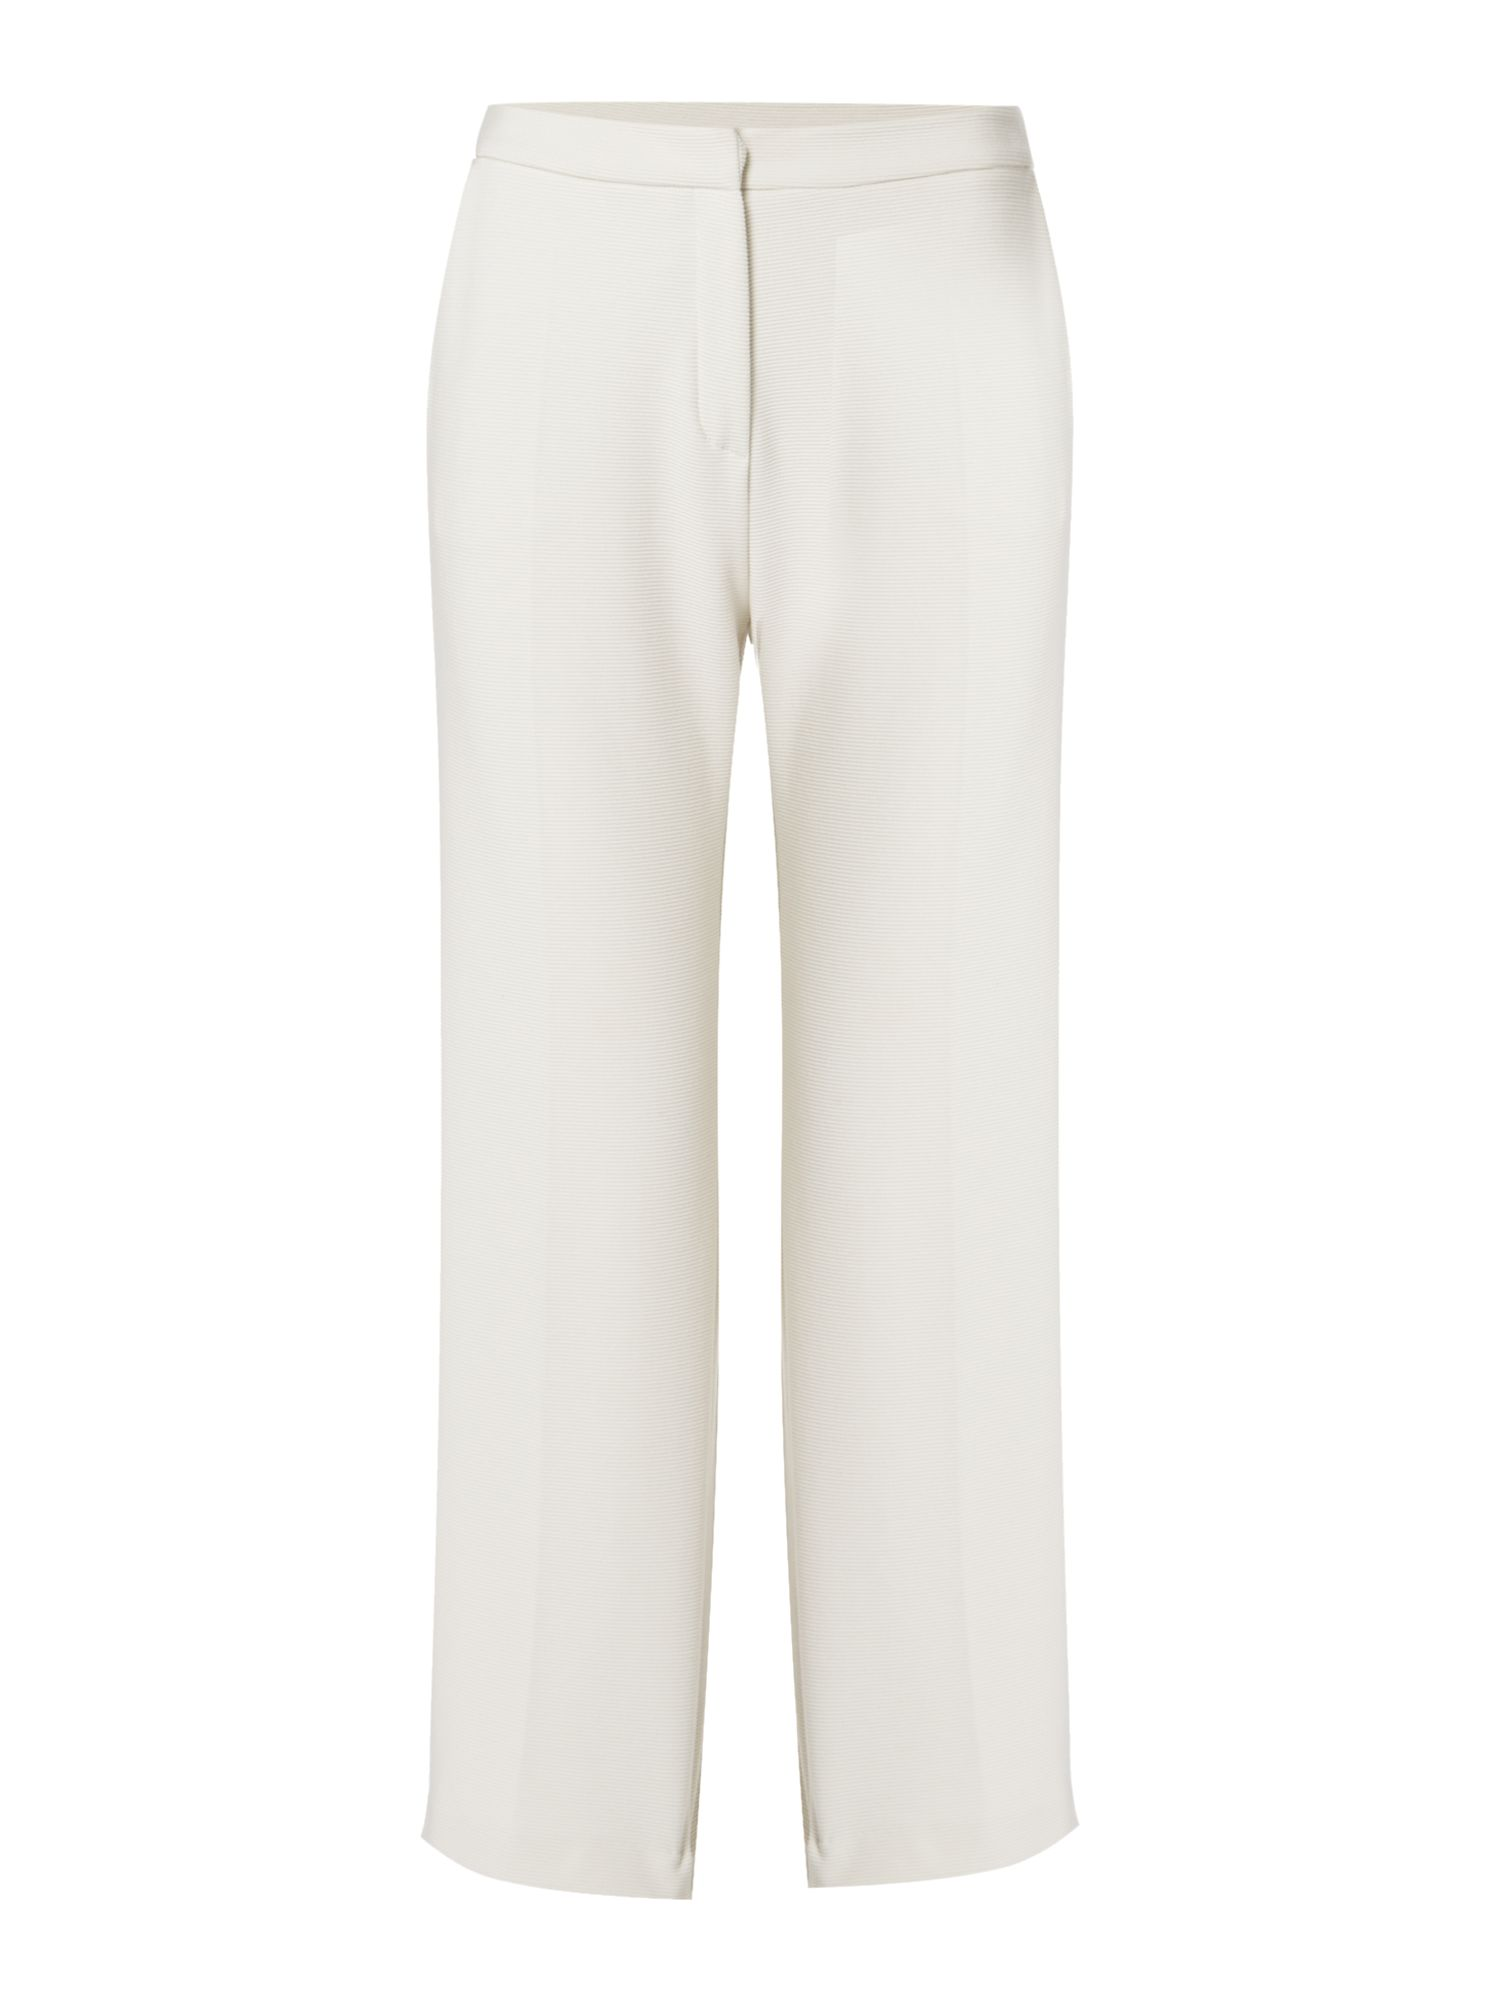 Max Mara Weekend Uruguay cropped jersey trouser in stripe, White